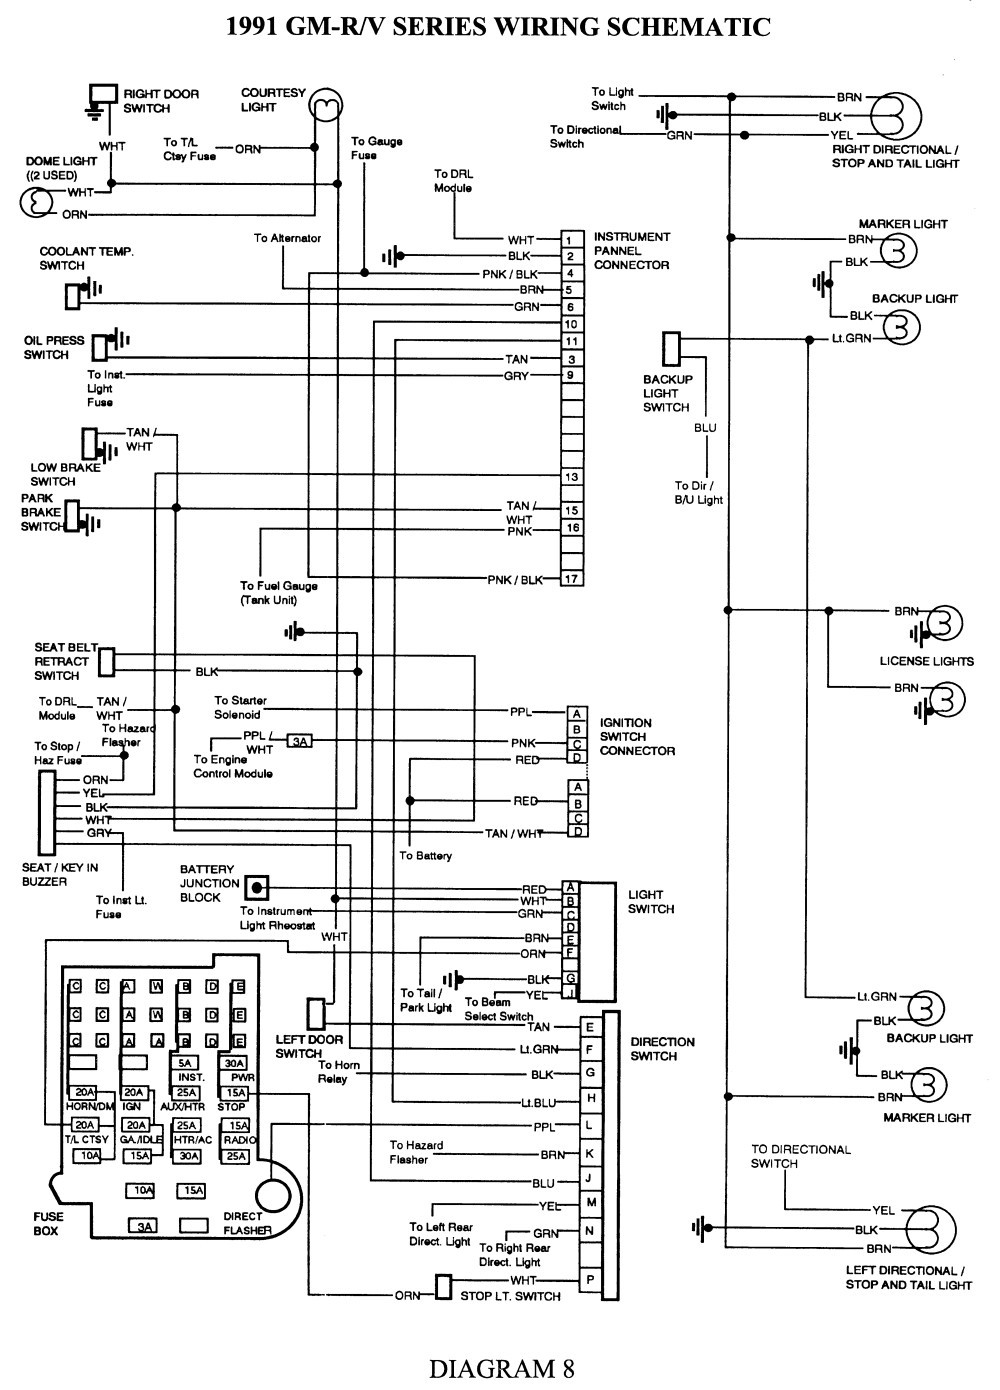 1994 chevy s10 radio wiring diagram